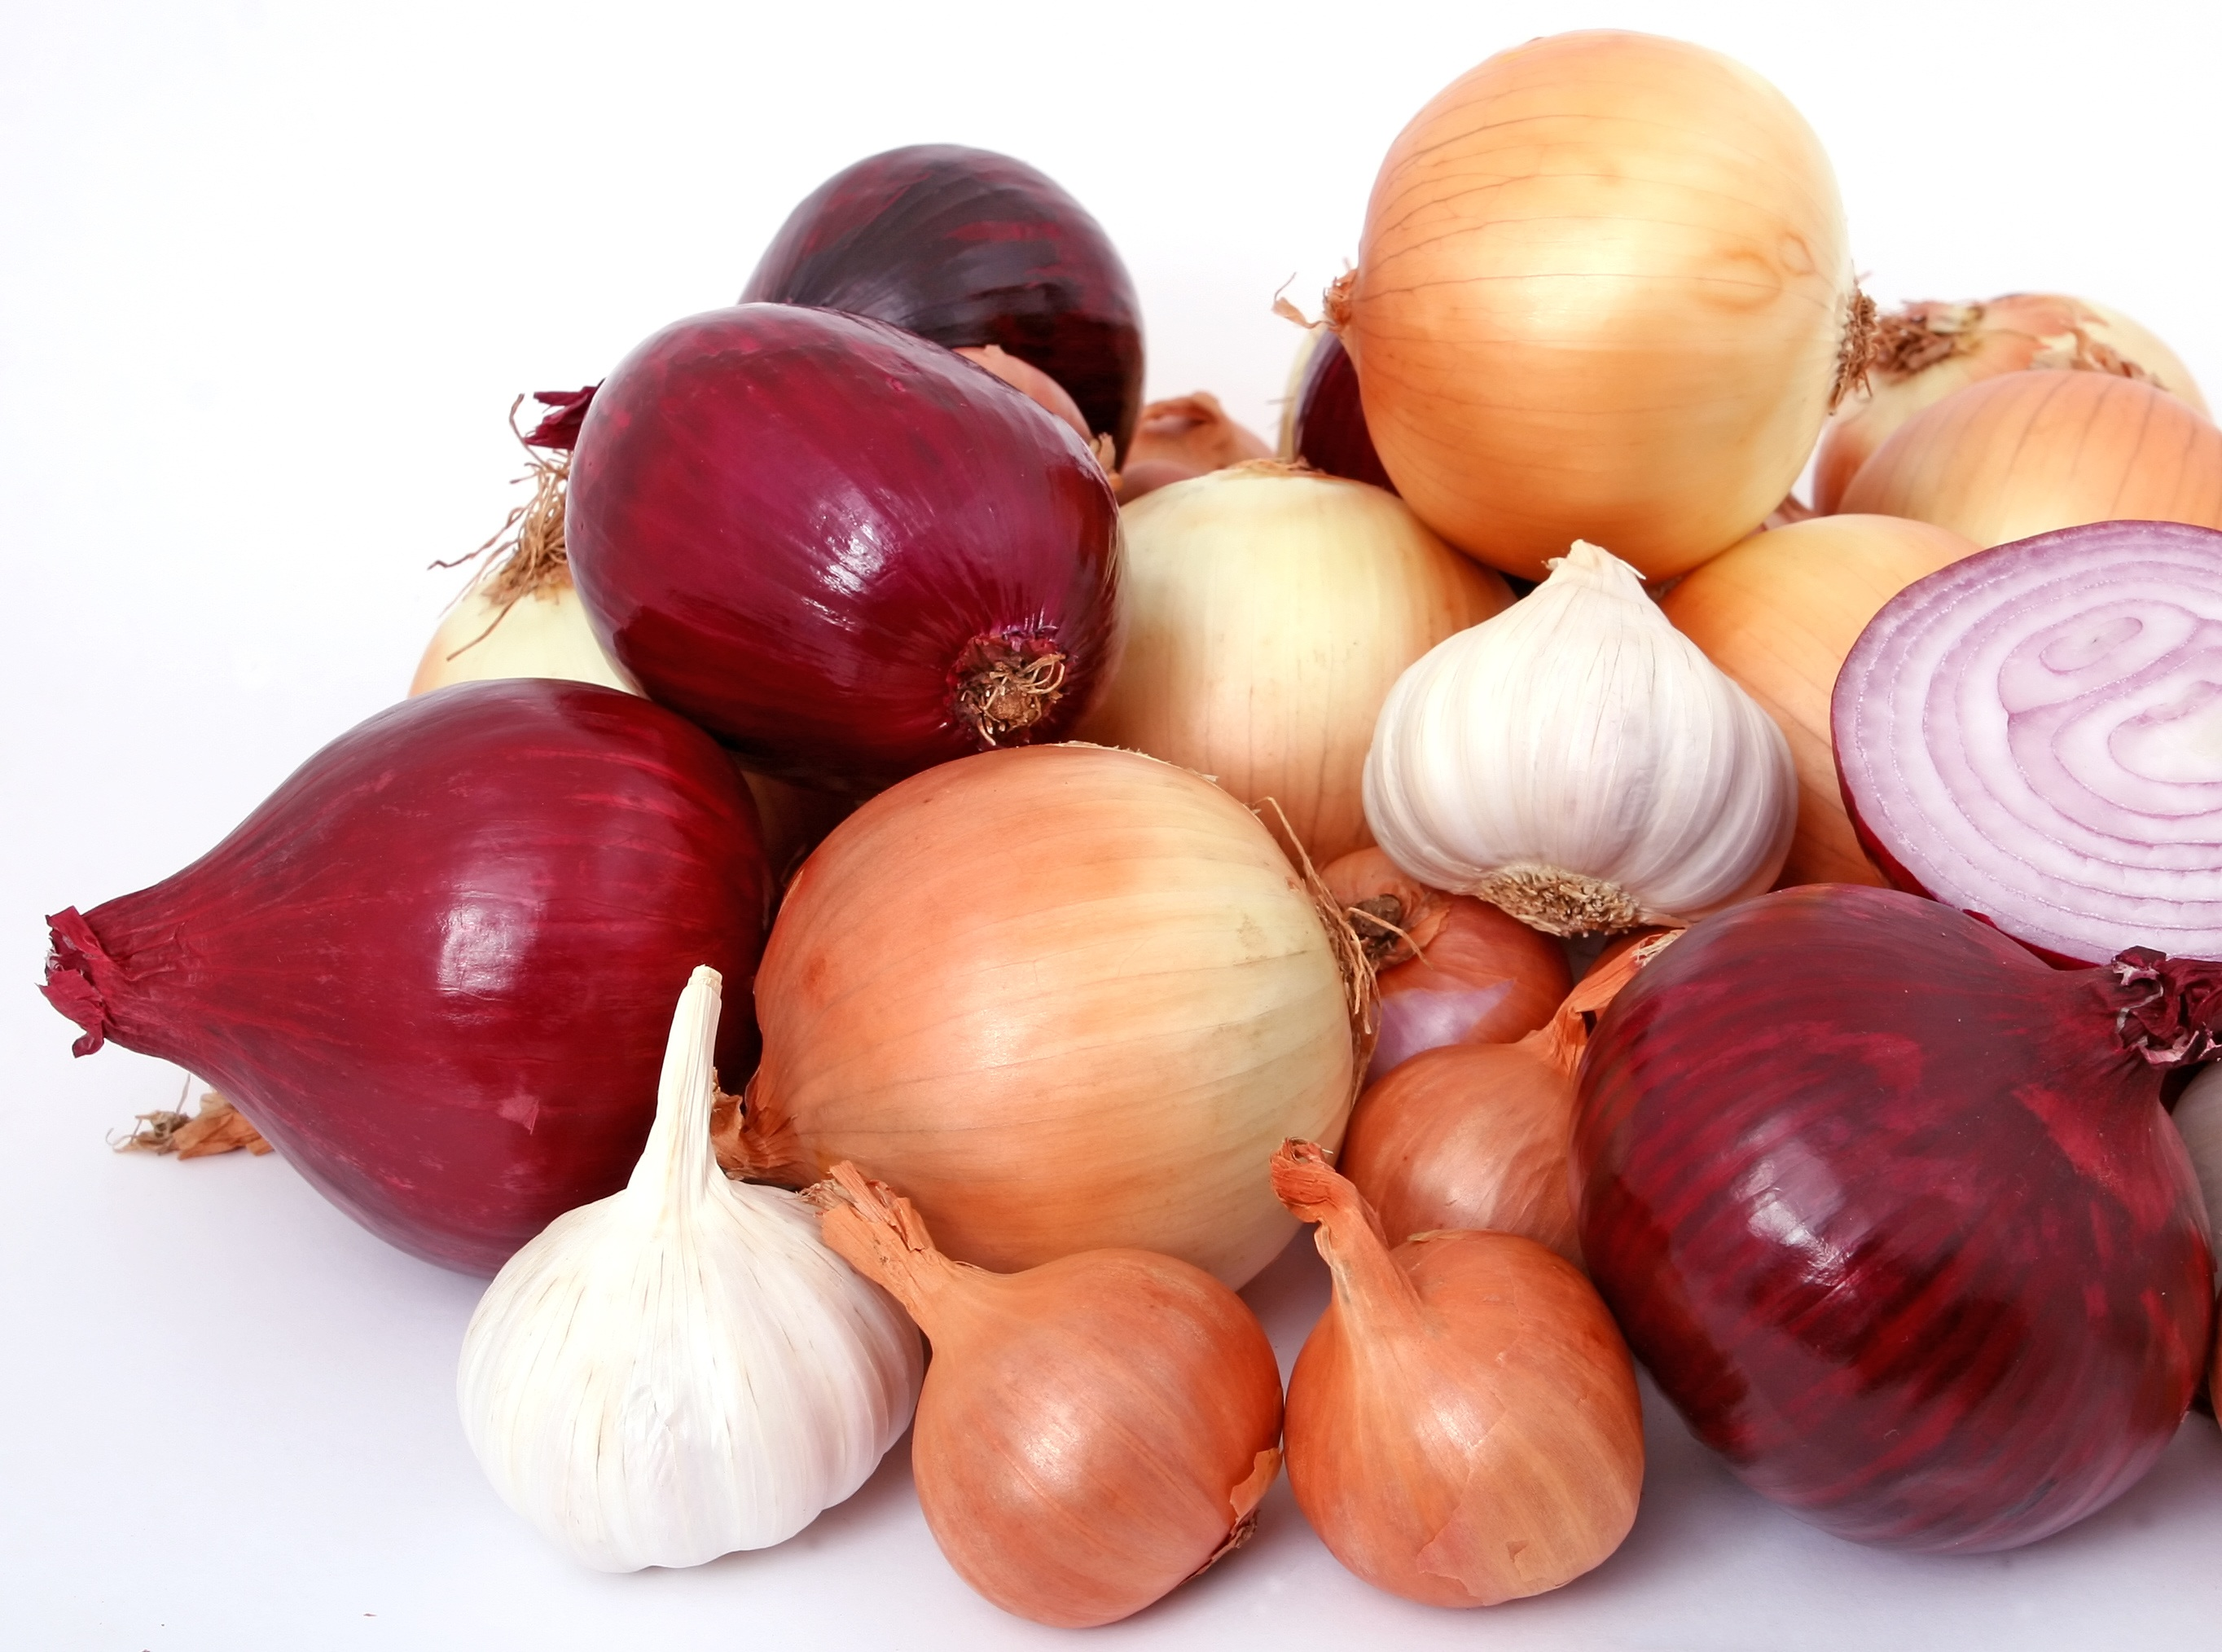 Garlic and onions are great for fighting off bacteria and fungi.